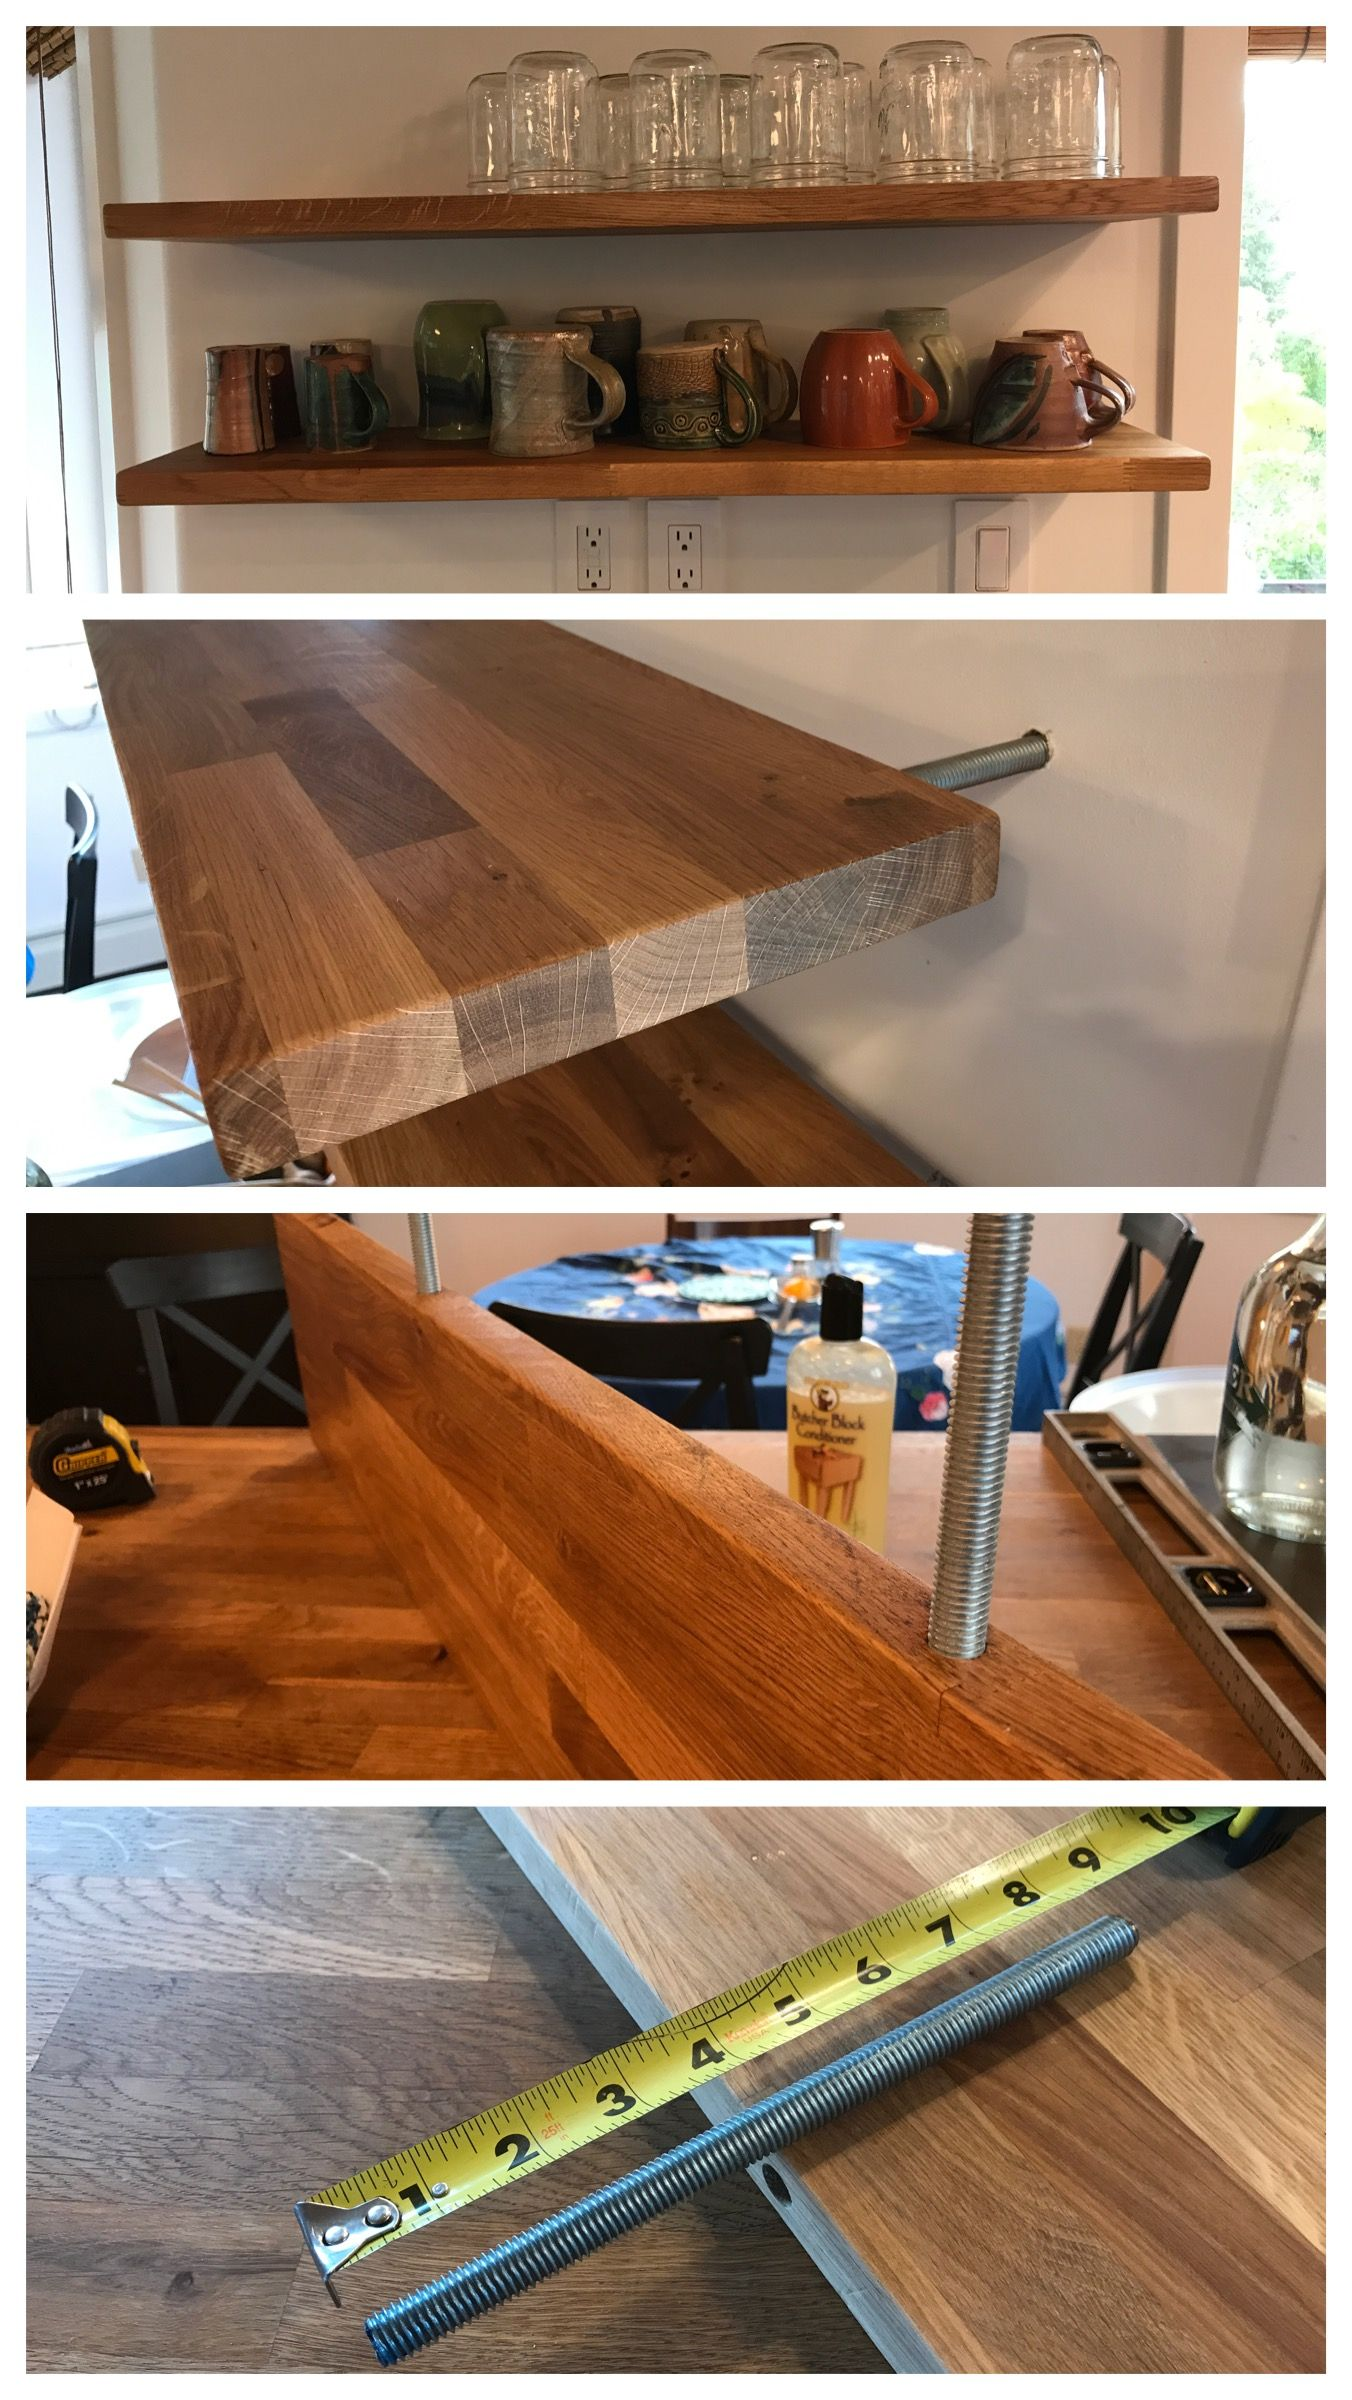 Cheap diy floating shelf using oak counter from Ikea and